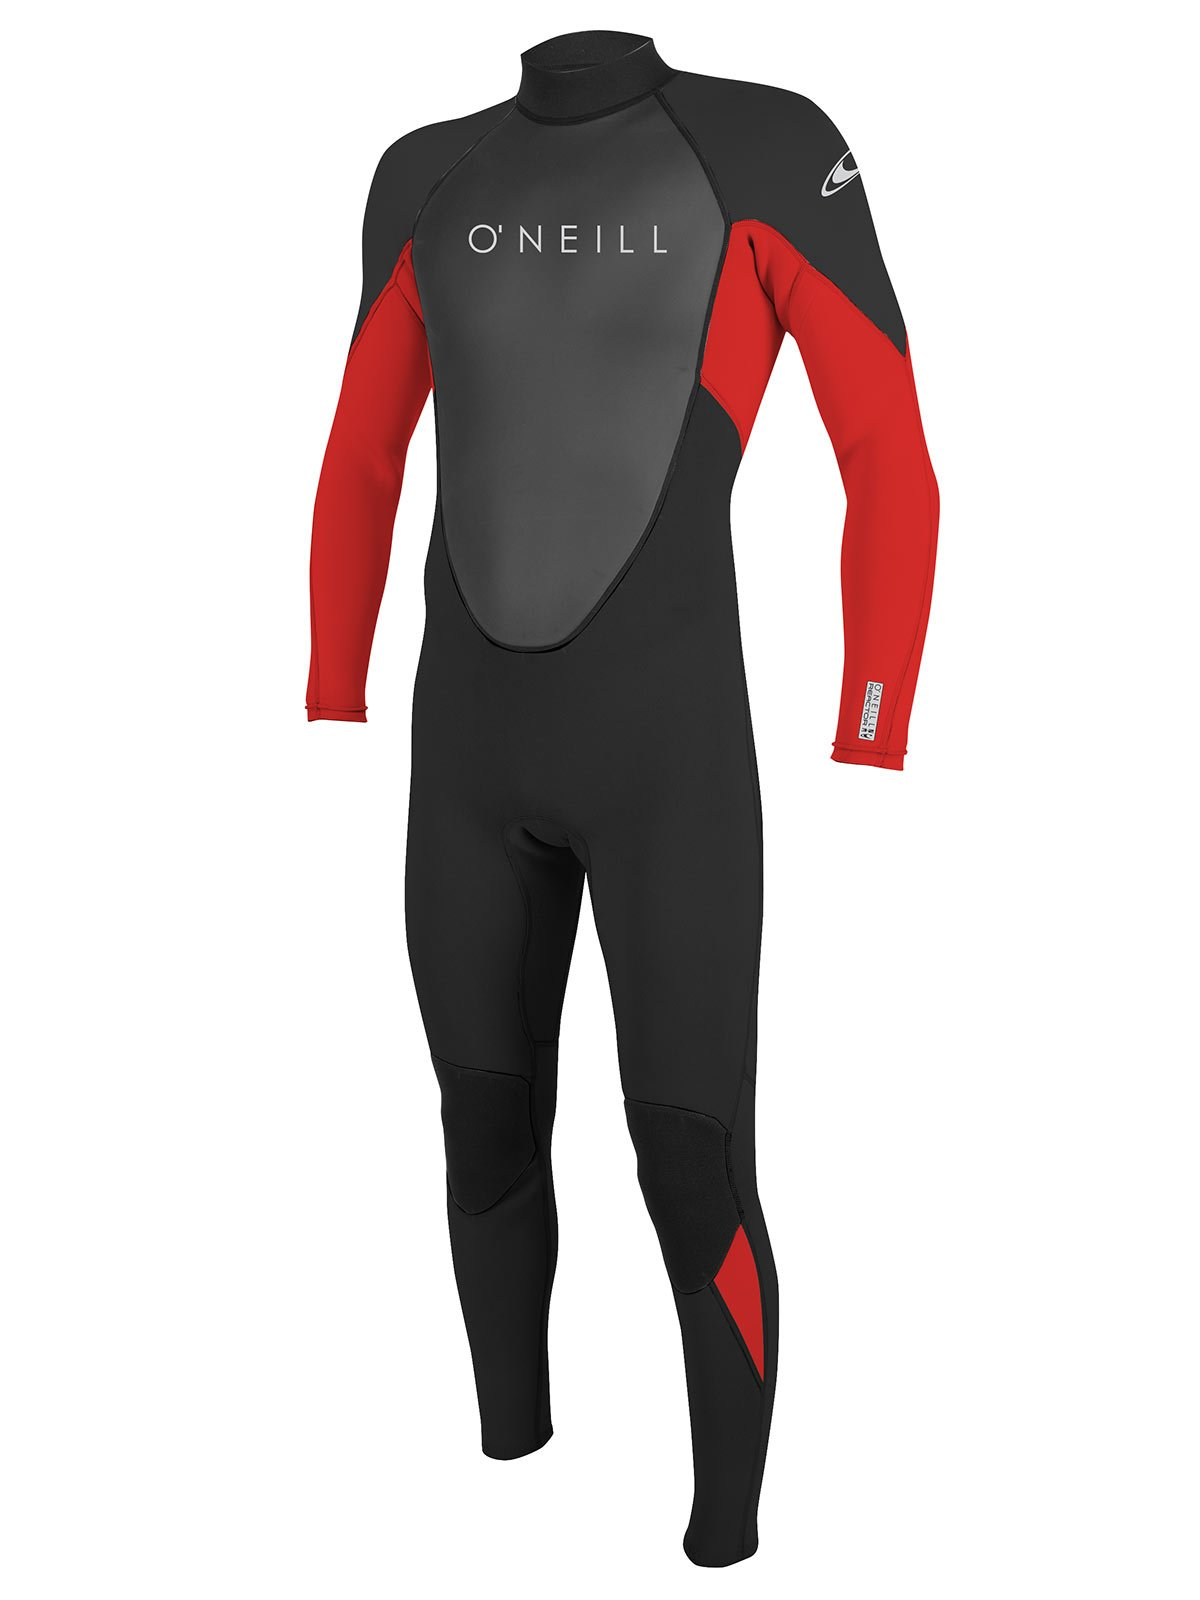 O'Neill Reactor 2 Men's 3/2mm Full Wetsuit 4XL-Short Black/red/black (5283IS)